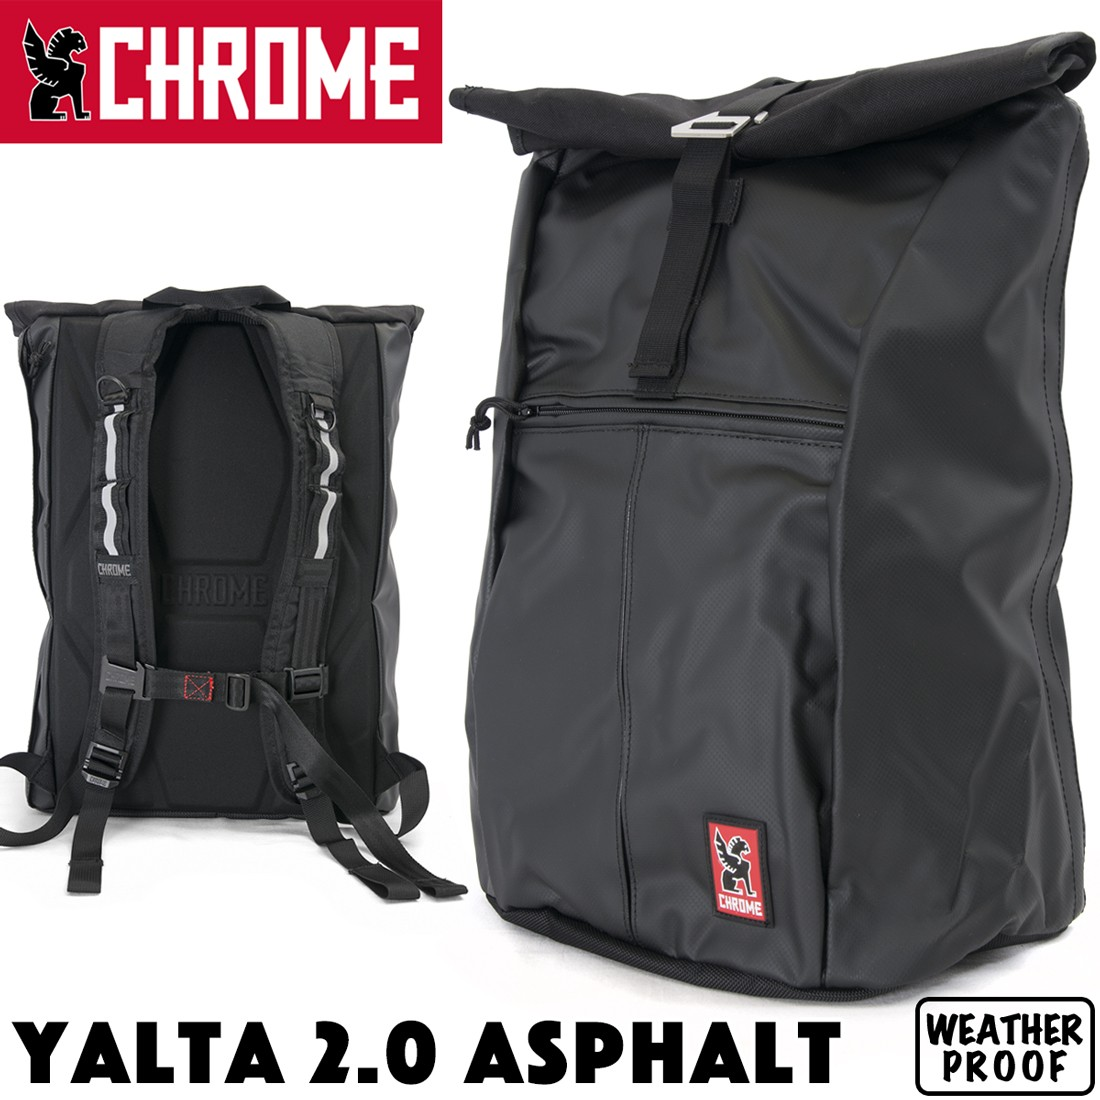 CHROME YALTA 2.0 ASPHALT